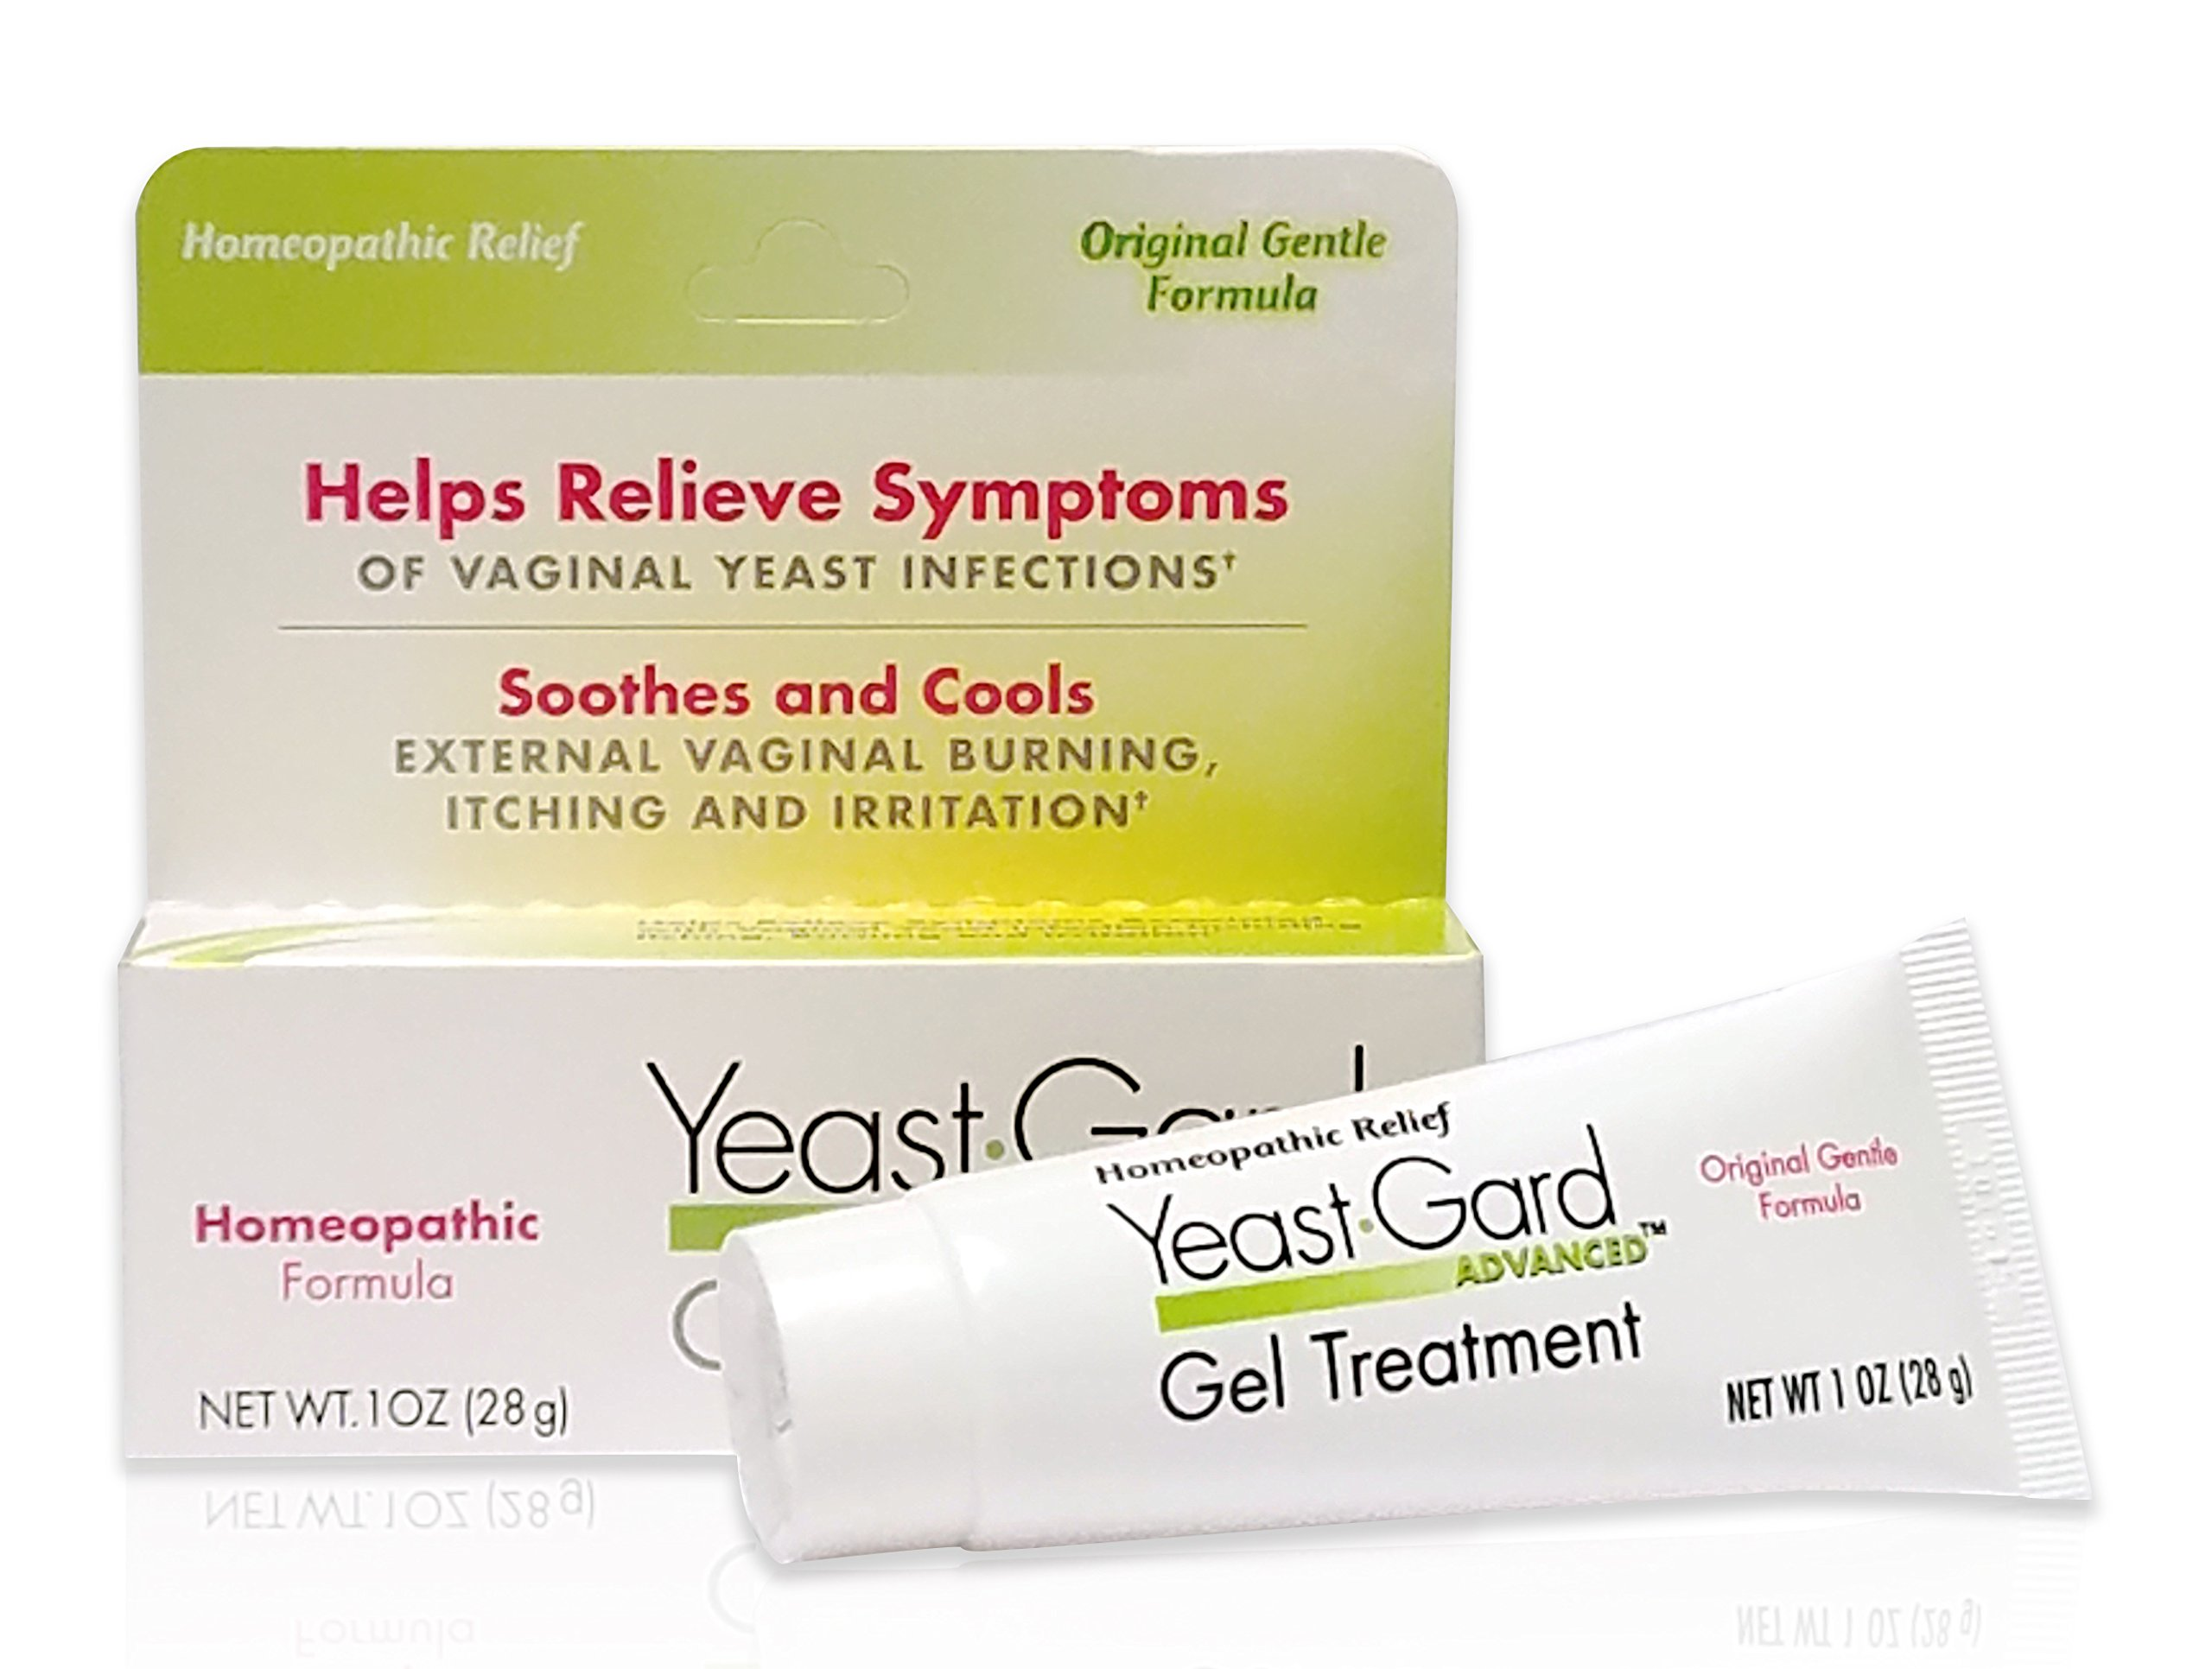 Yeastgard advanced homeopathic capsules in a for Exterior yeast infection